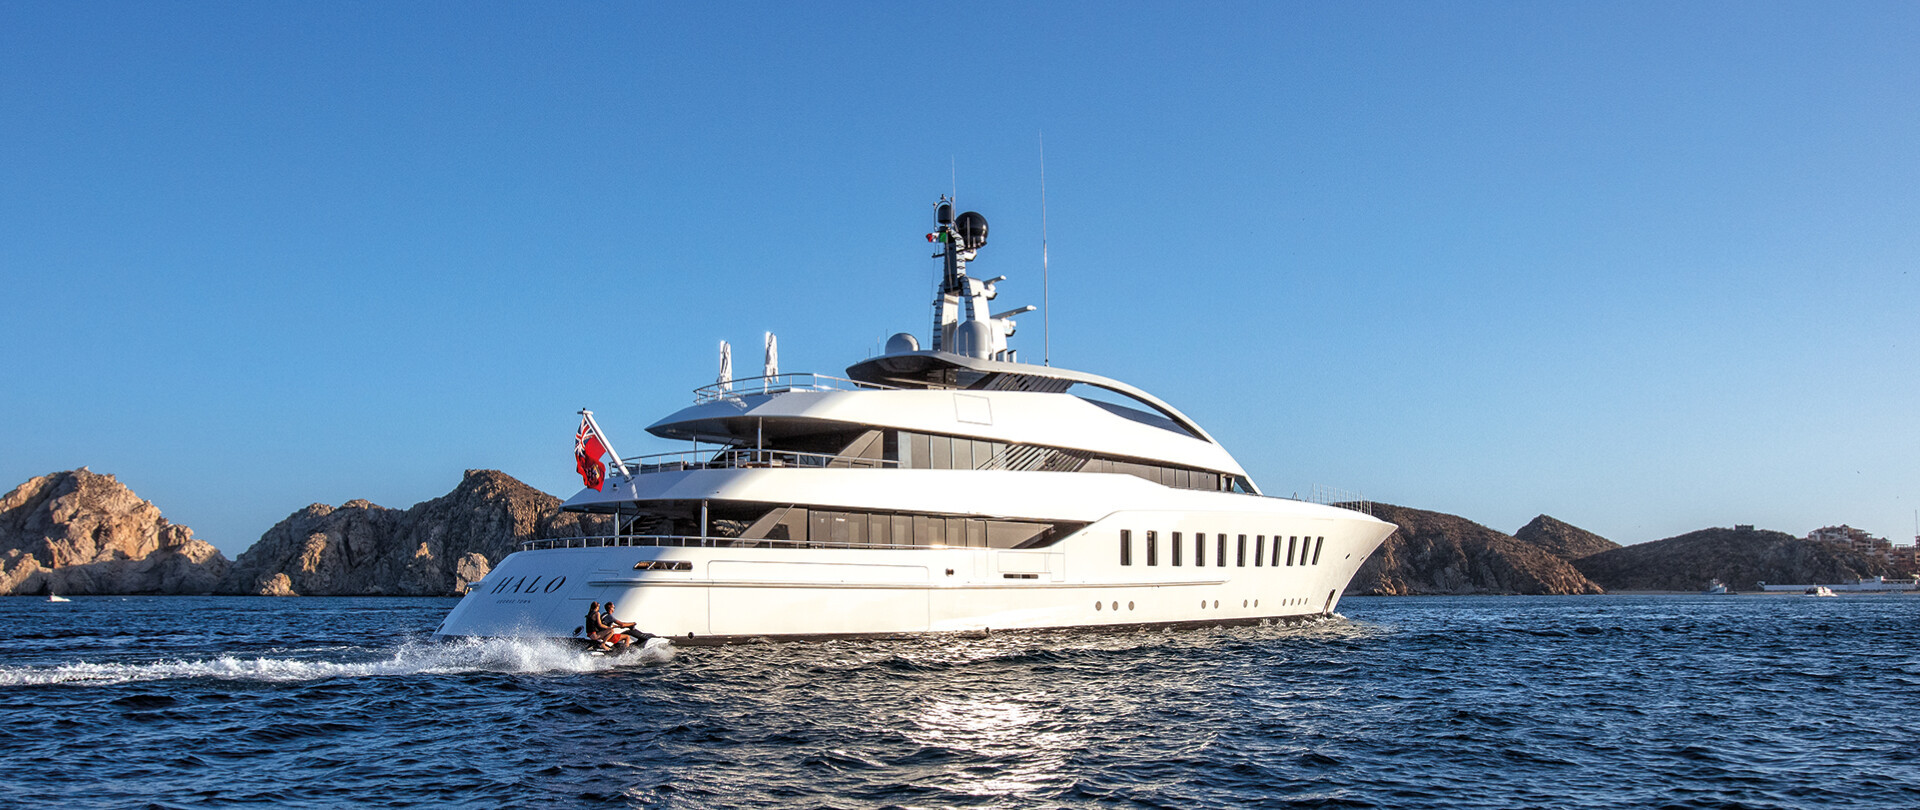 Edmiston outperforms once more – selling 50m yachts faster than anyone else photo 1